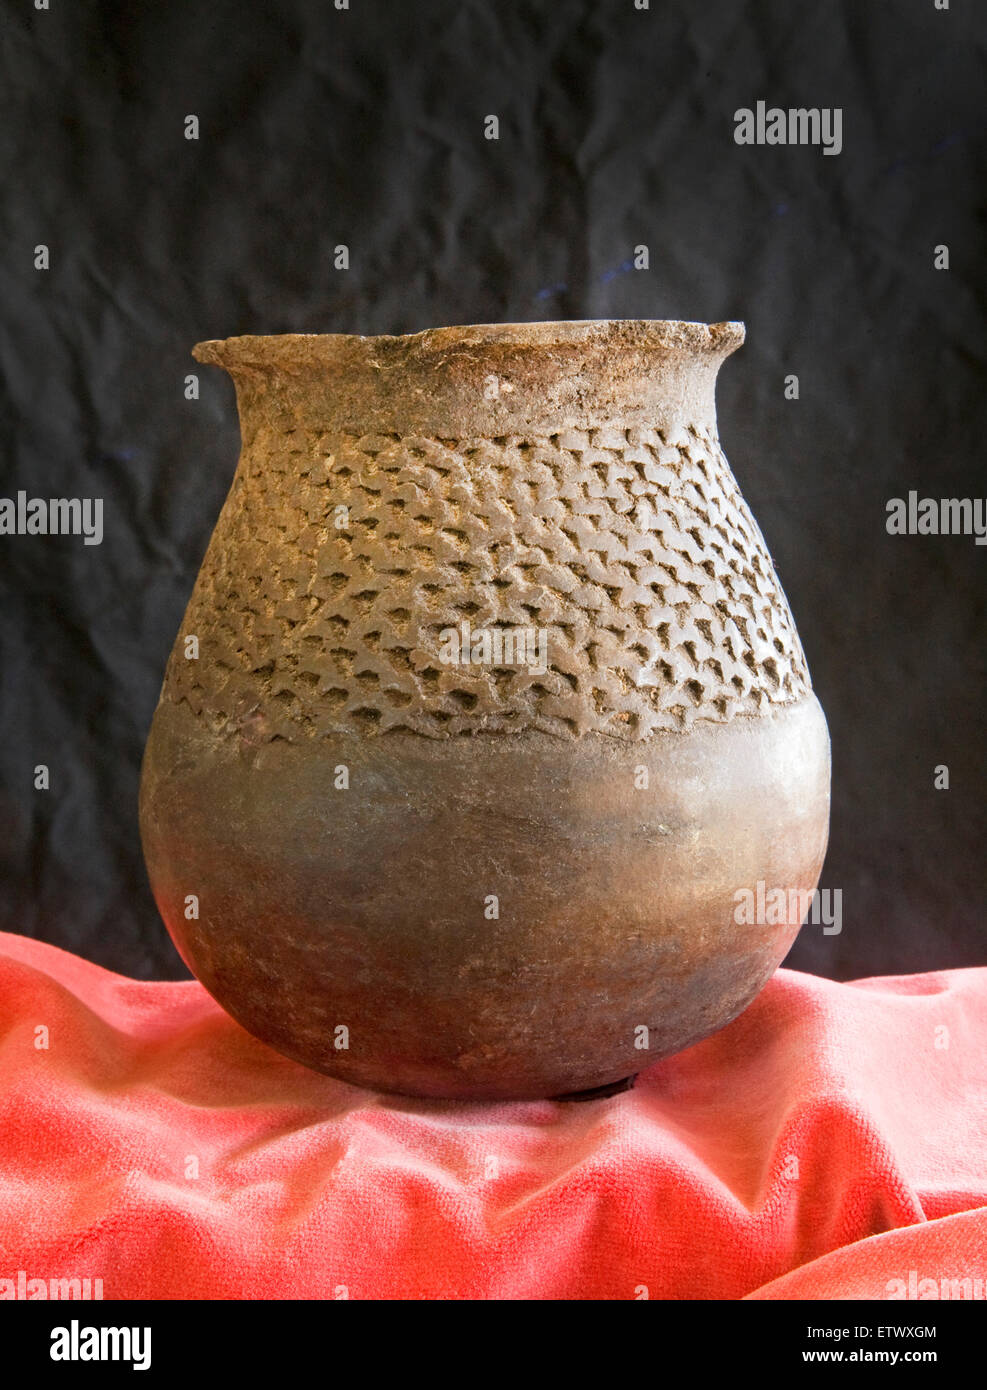 An example of thousand year old Mogollon Indian pottery called Mogollon Brown Ware, dating from around 1050-1250 - Stock Image